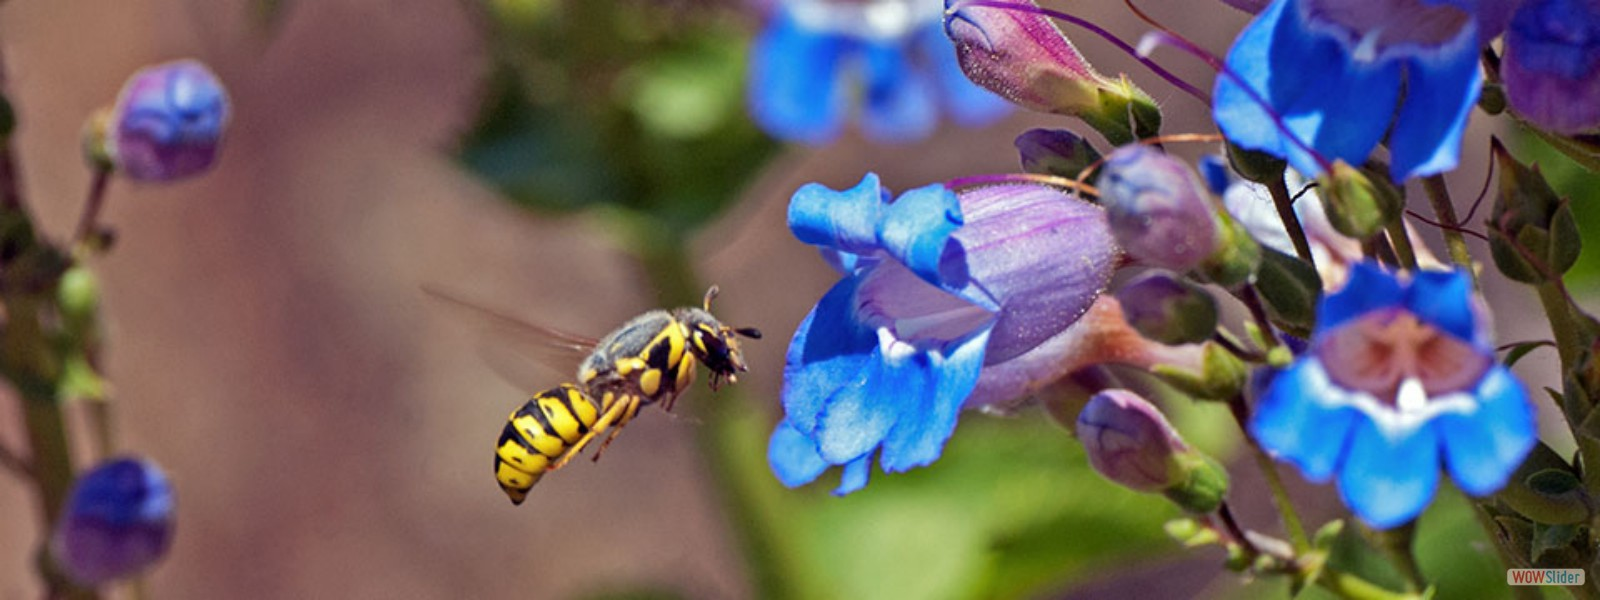 A pollen wasp, <em>Pseudomasaris vespoides</em>, visiting Royal Penstemon